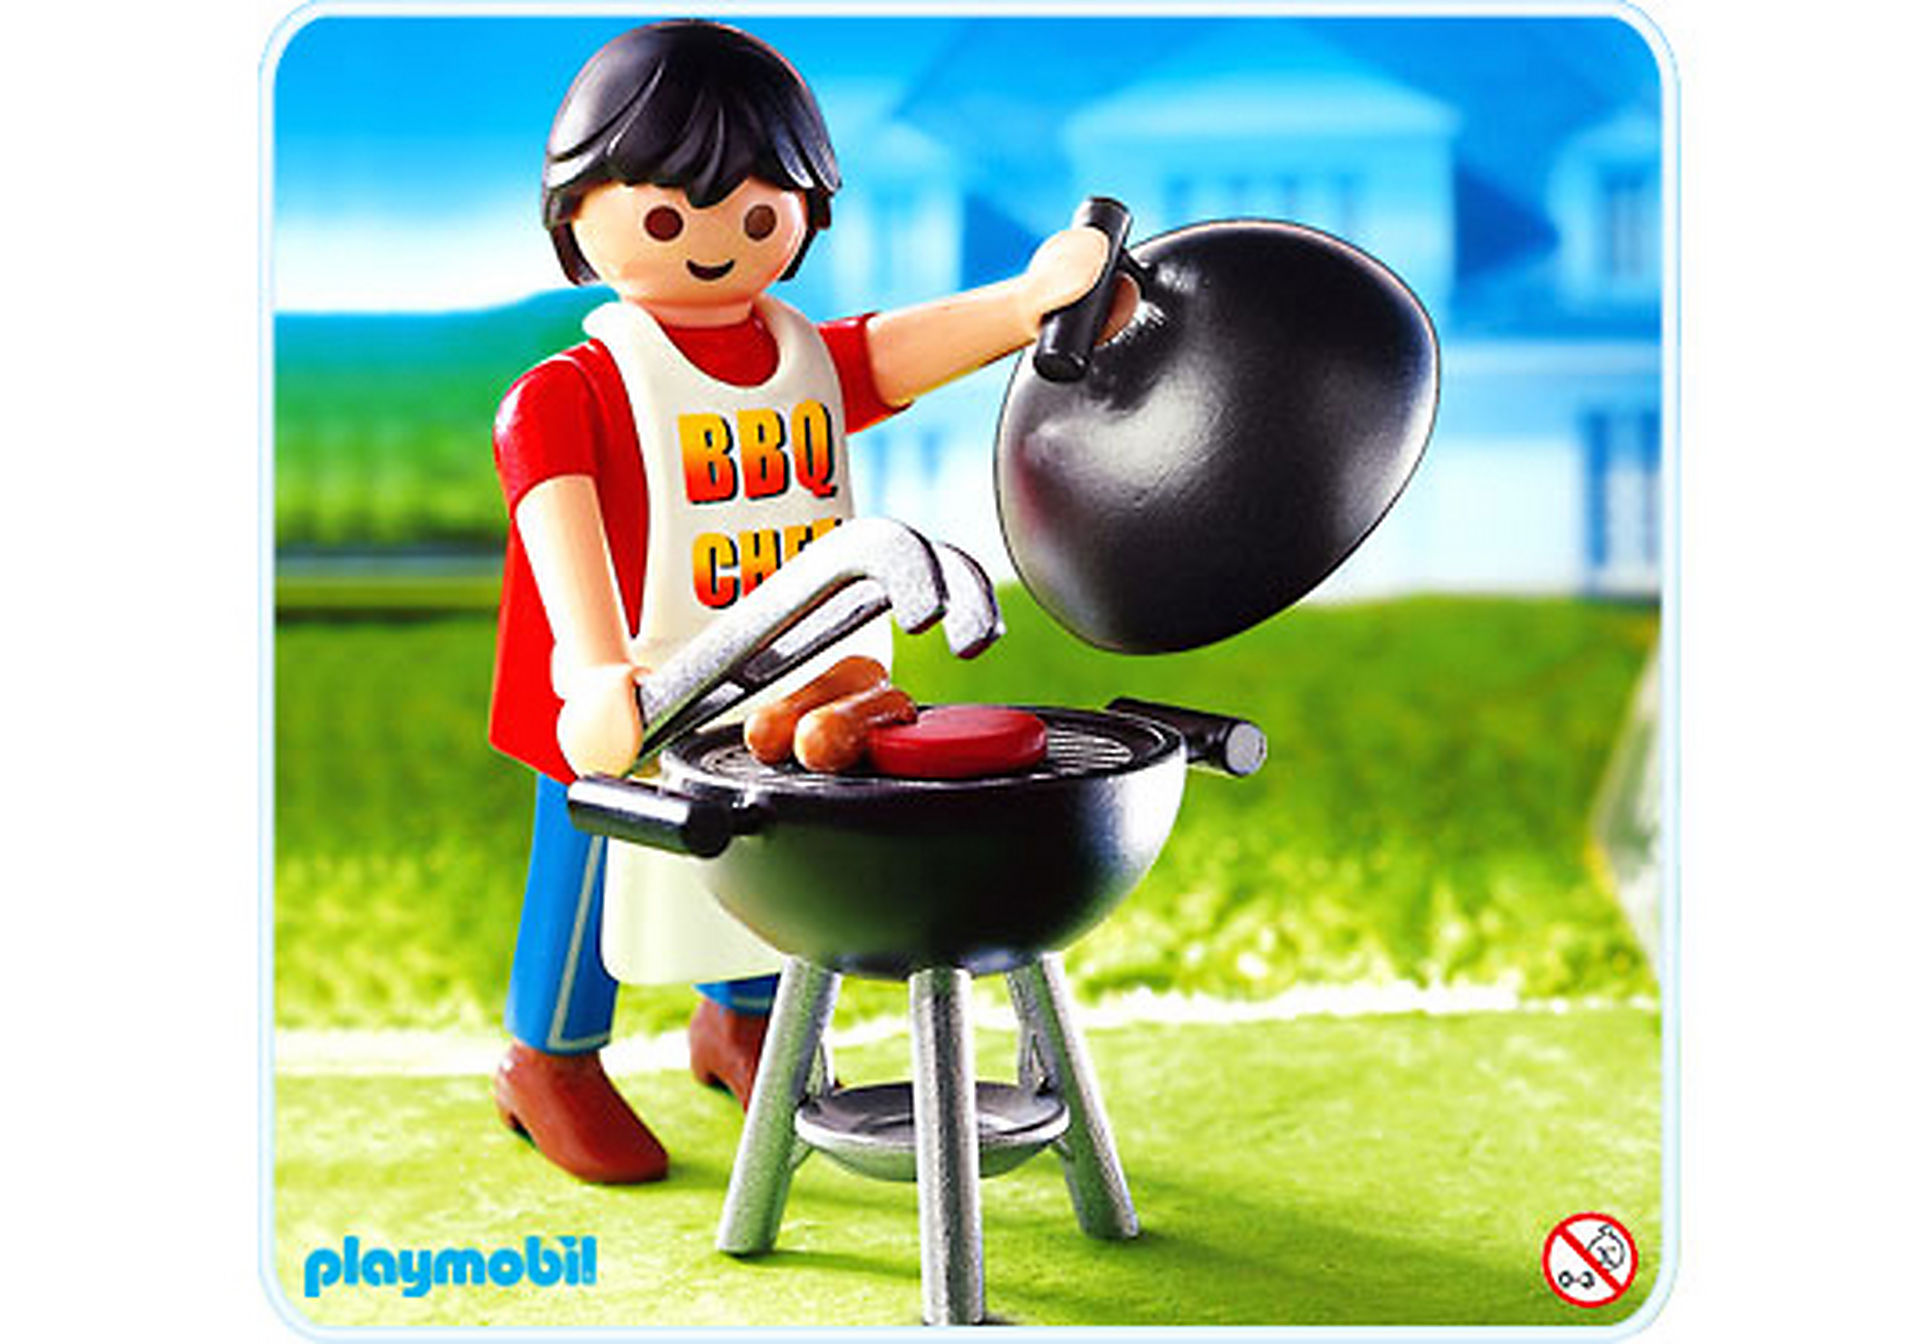 http://media.playmobil.com/i/playmobil/4649-A_product_detail/Papa mit Grill